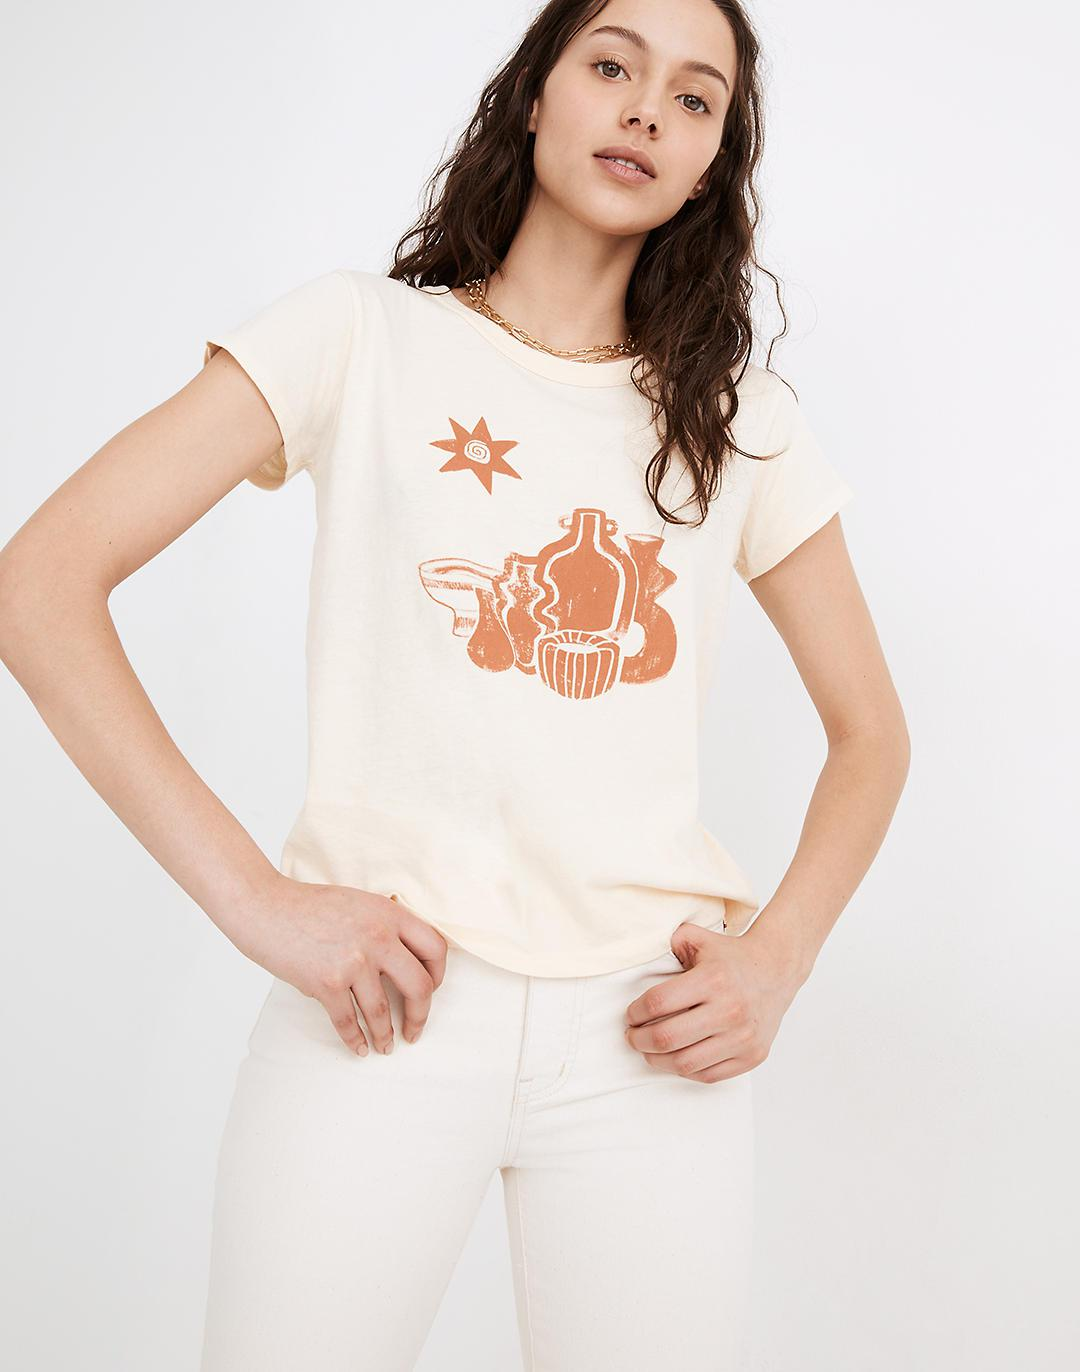 Madewell x Élan Byrd Vessel Graphic Perfect Vintage Tee